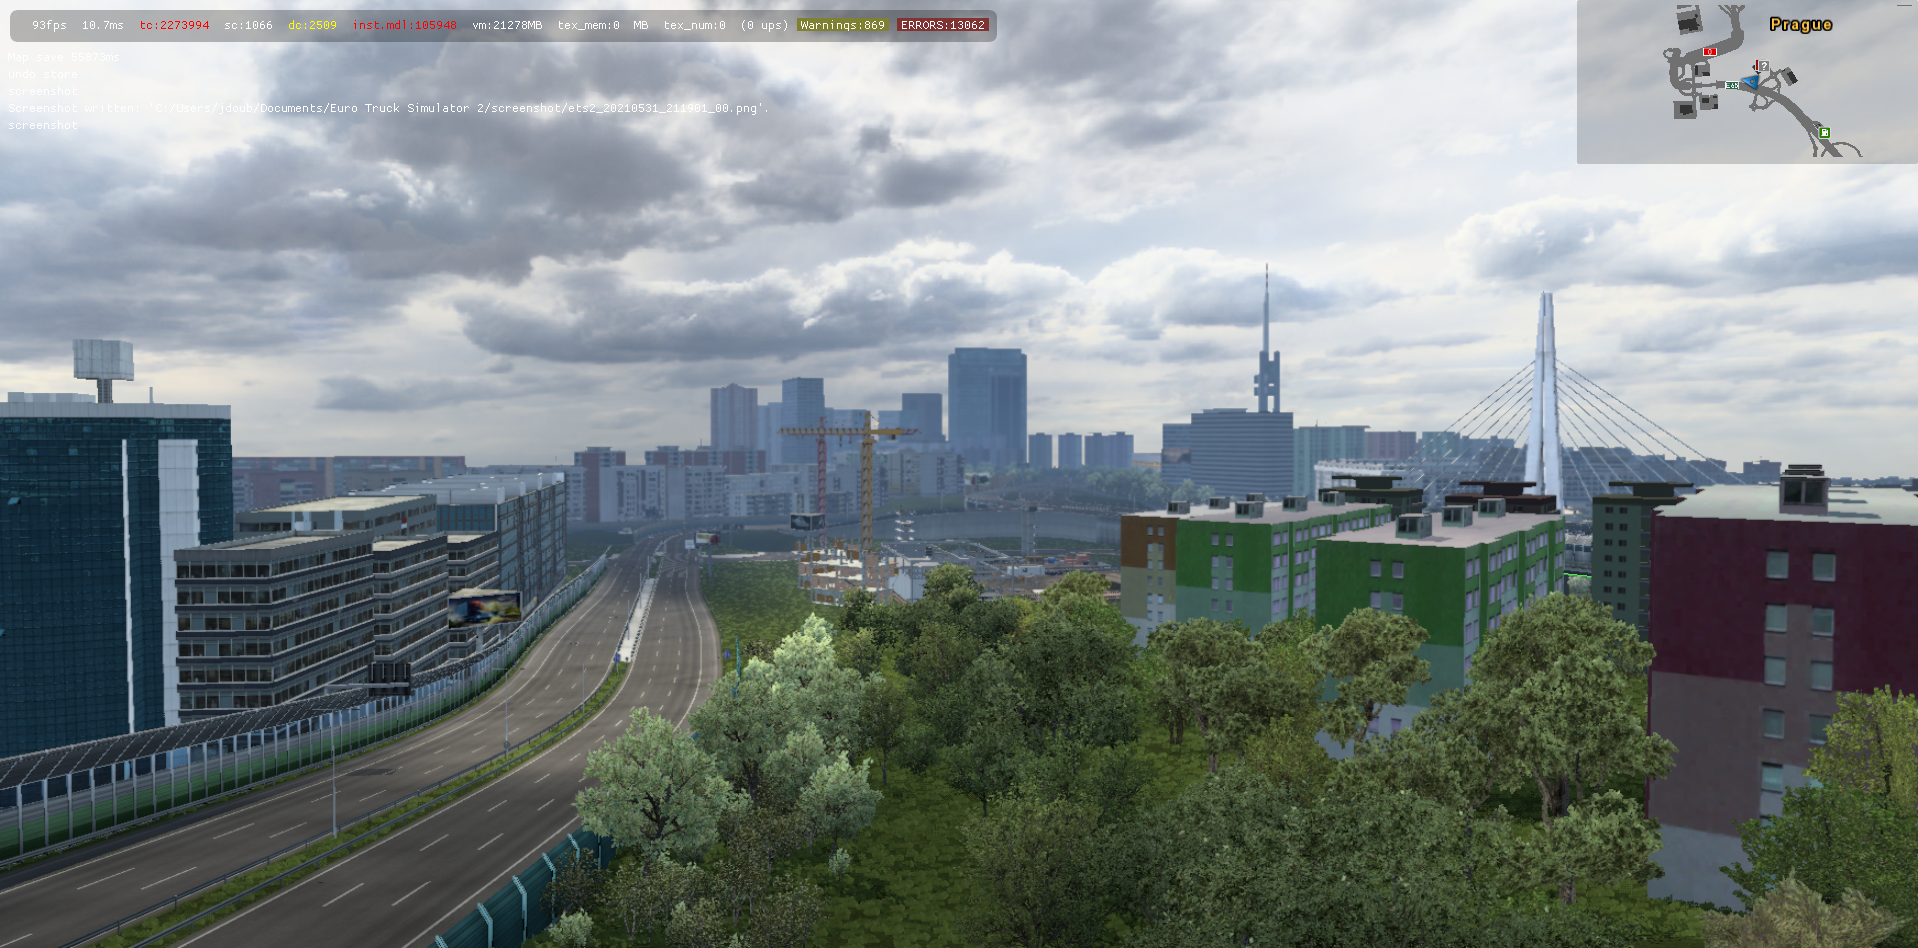 ets2_20210531_211912_00.png